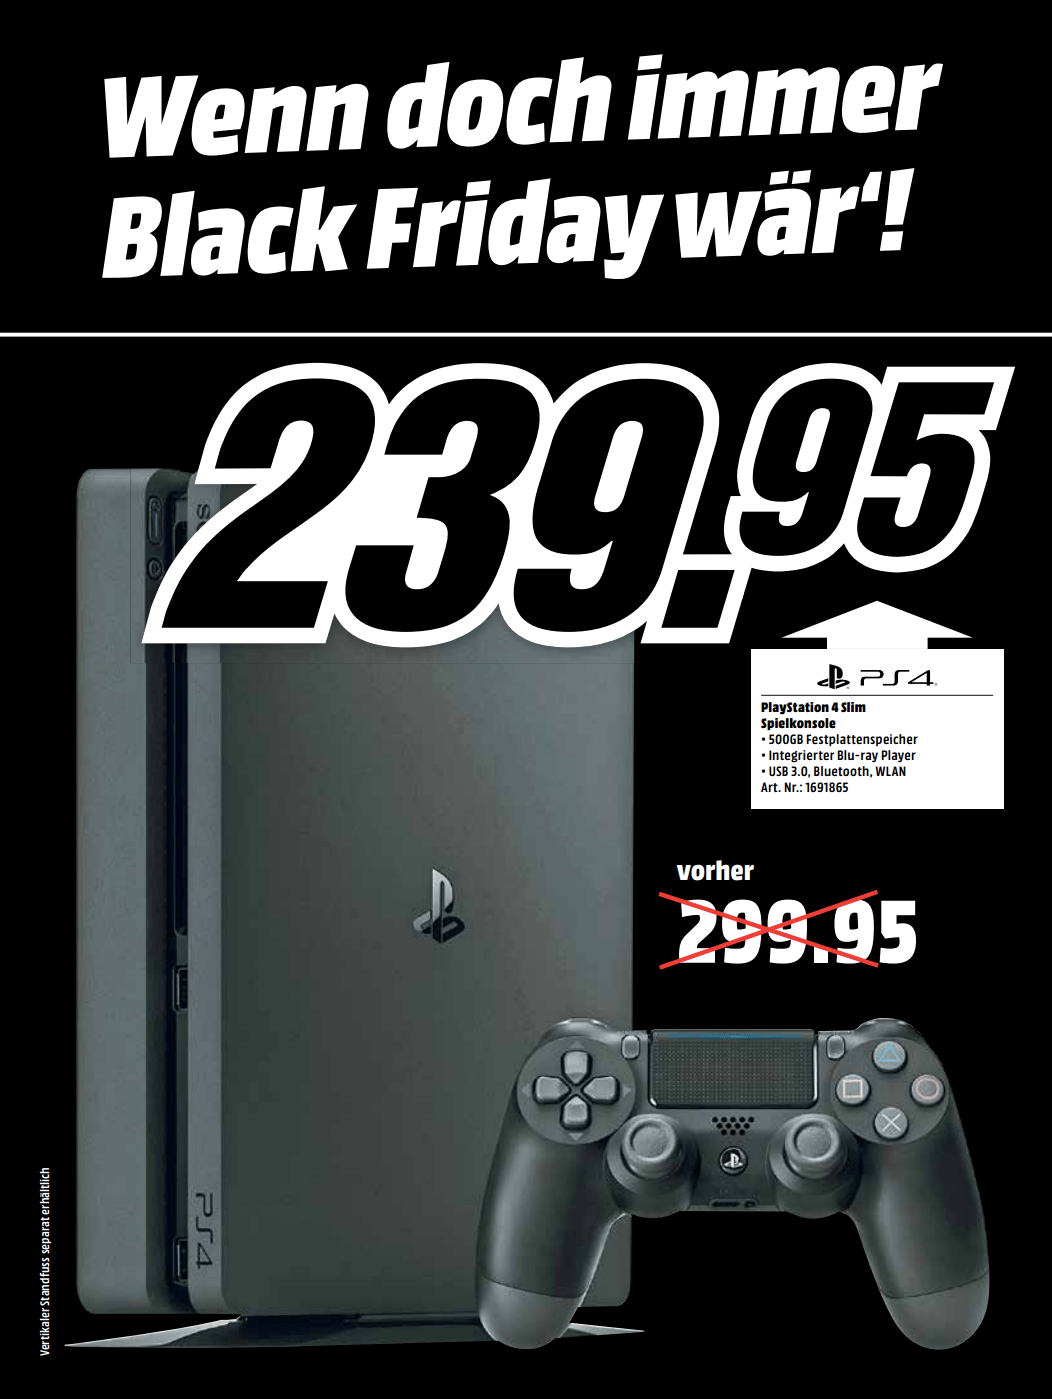 Black Friday Angebot Tv Angebote Black Friday